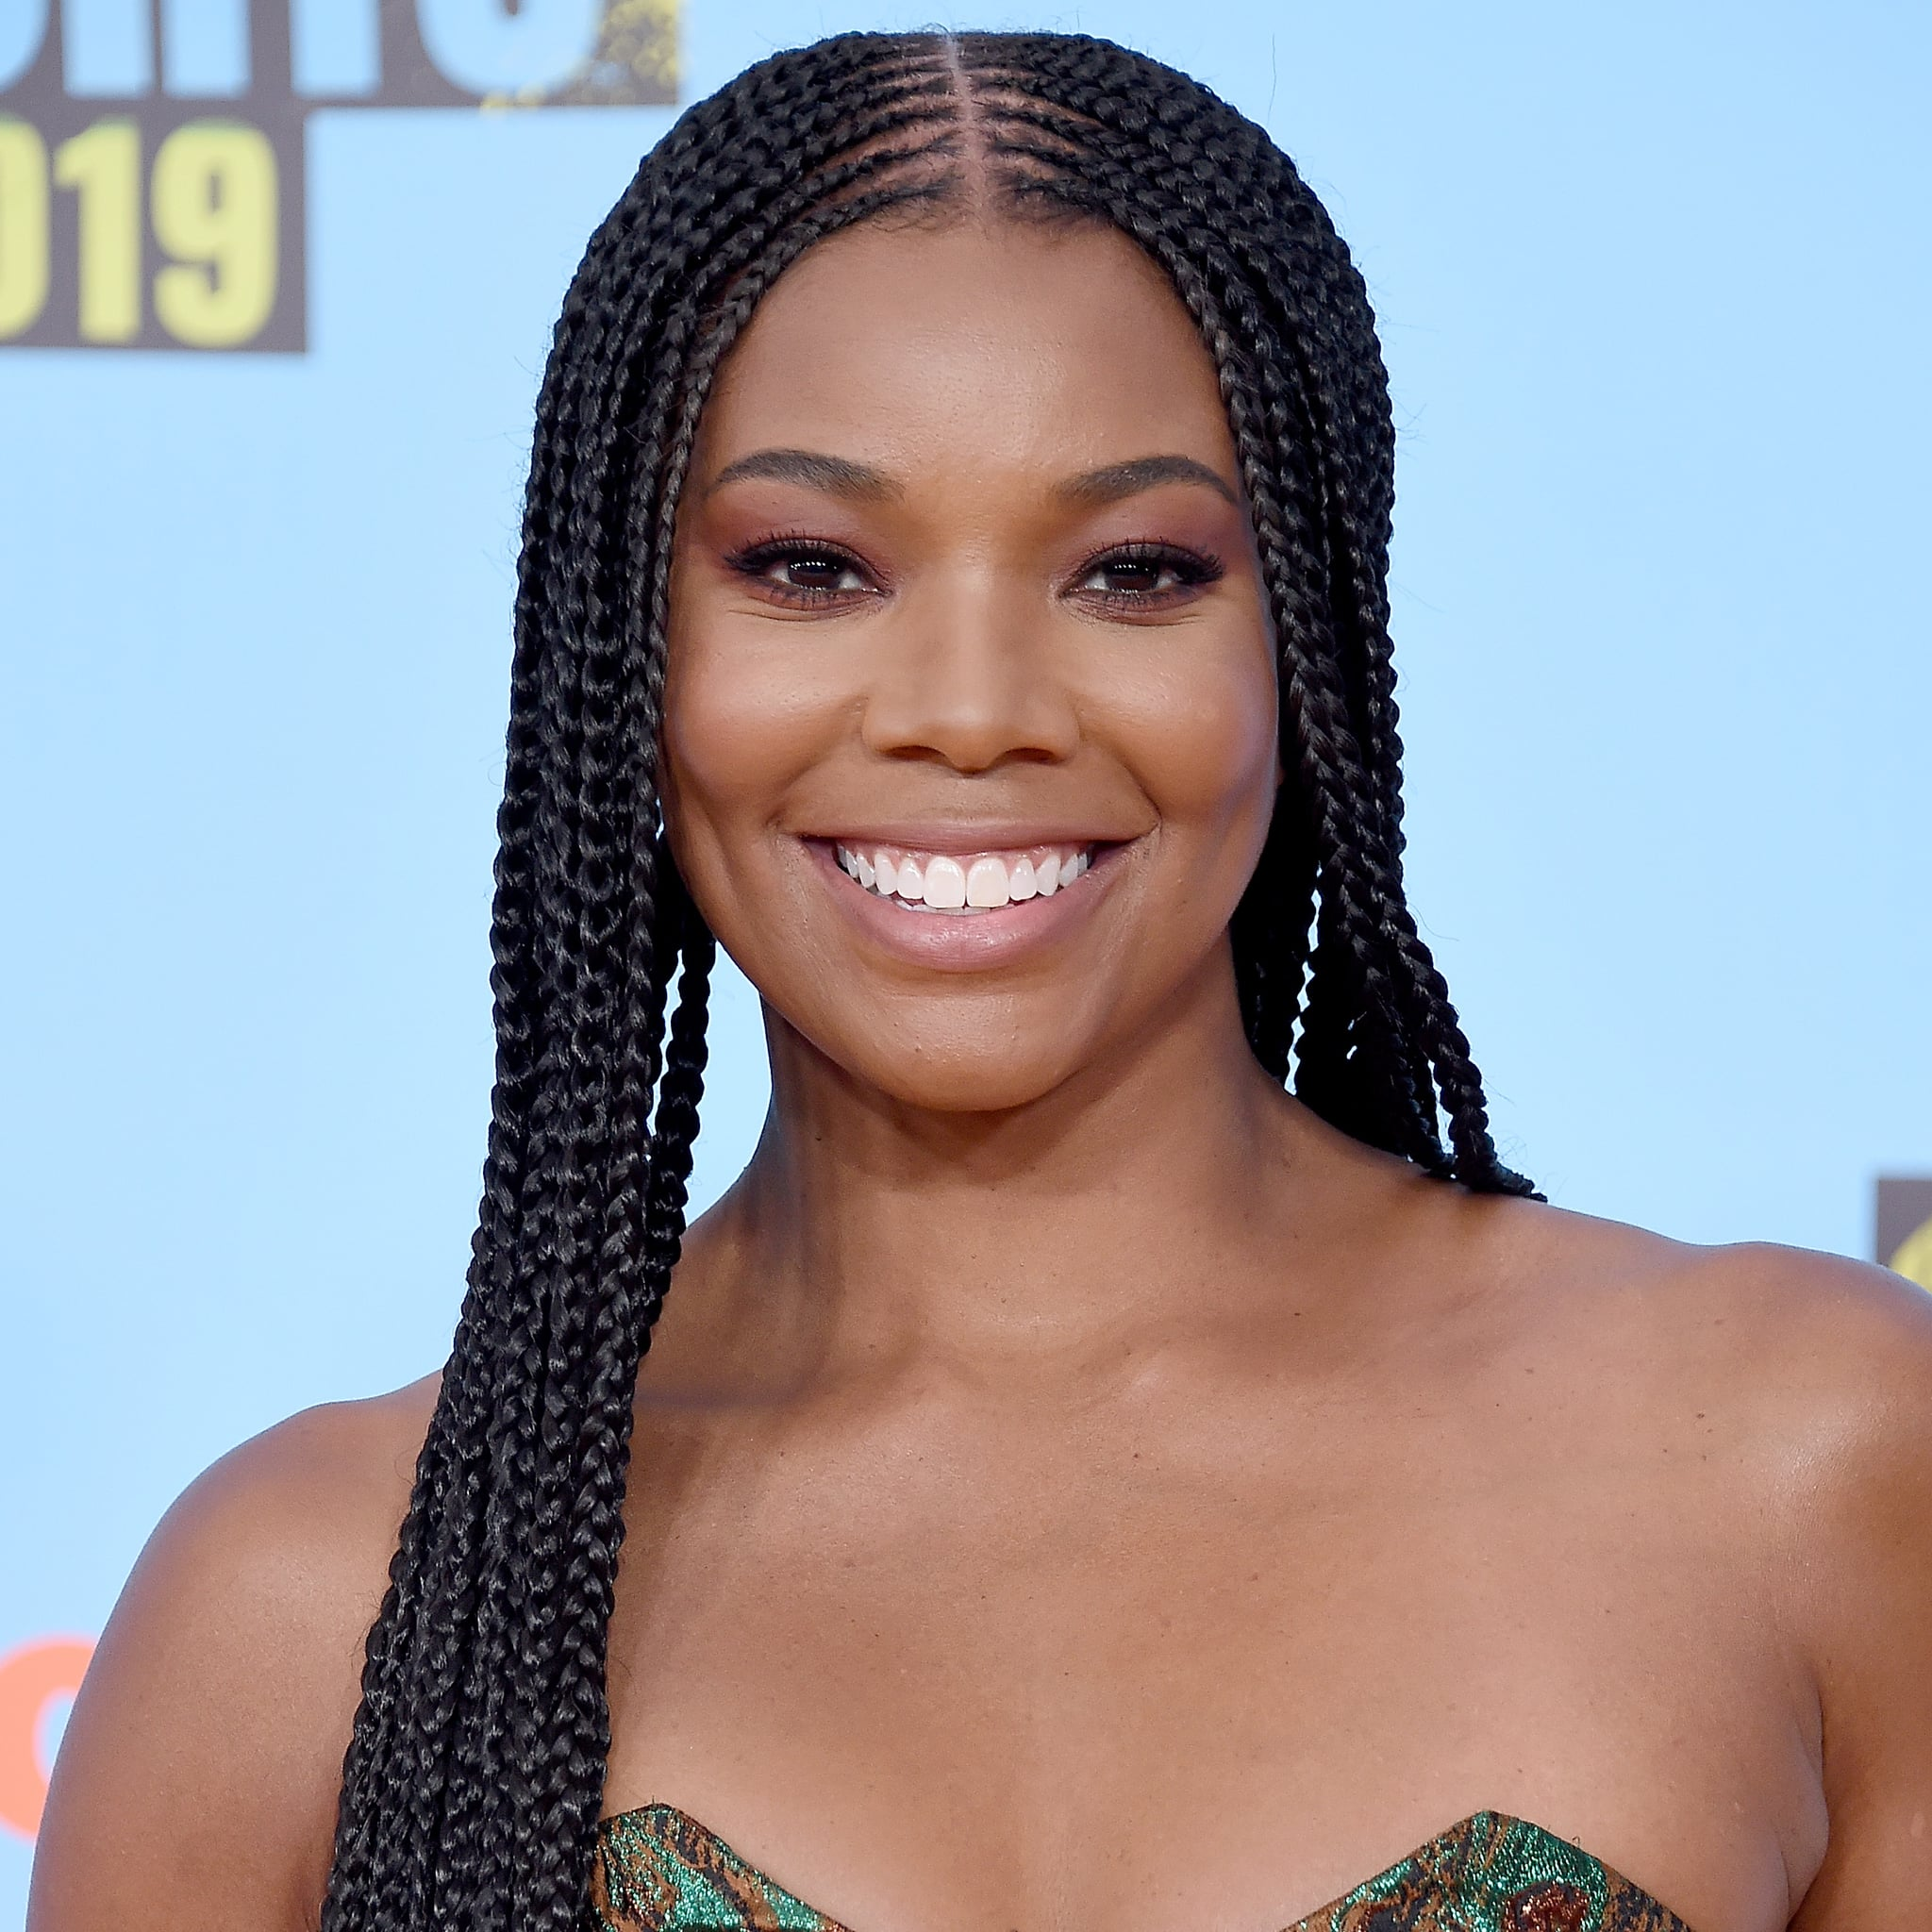 Gabrielle Union Flaunts Her Happiness On Social Media - Check Out Her Pics Here